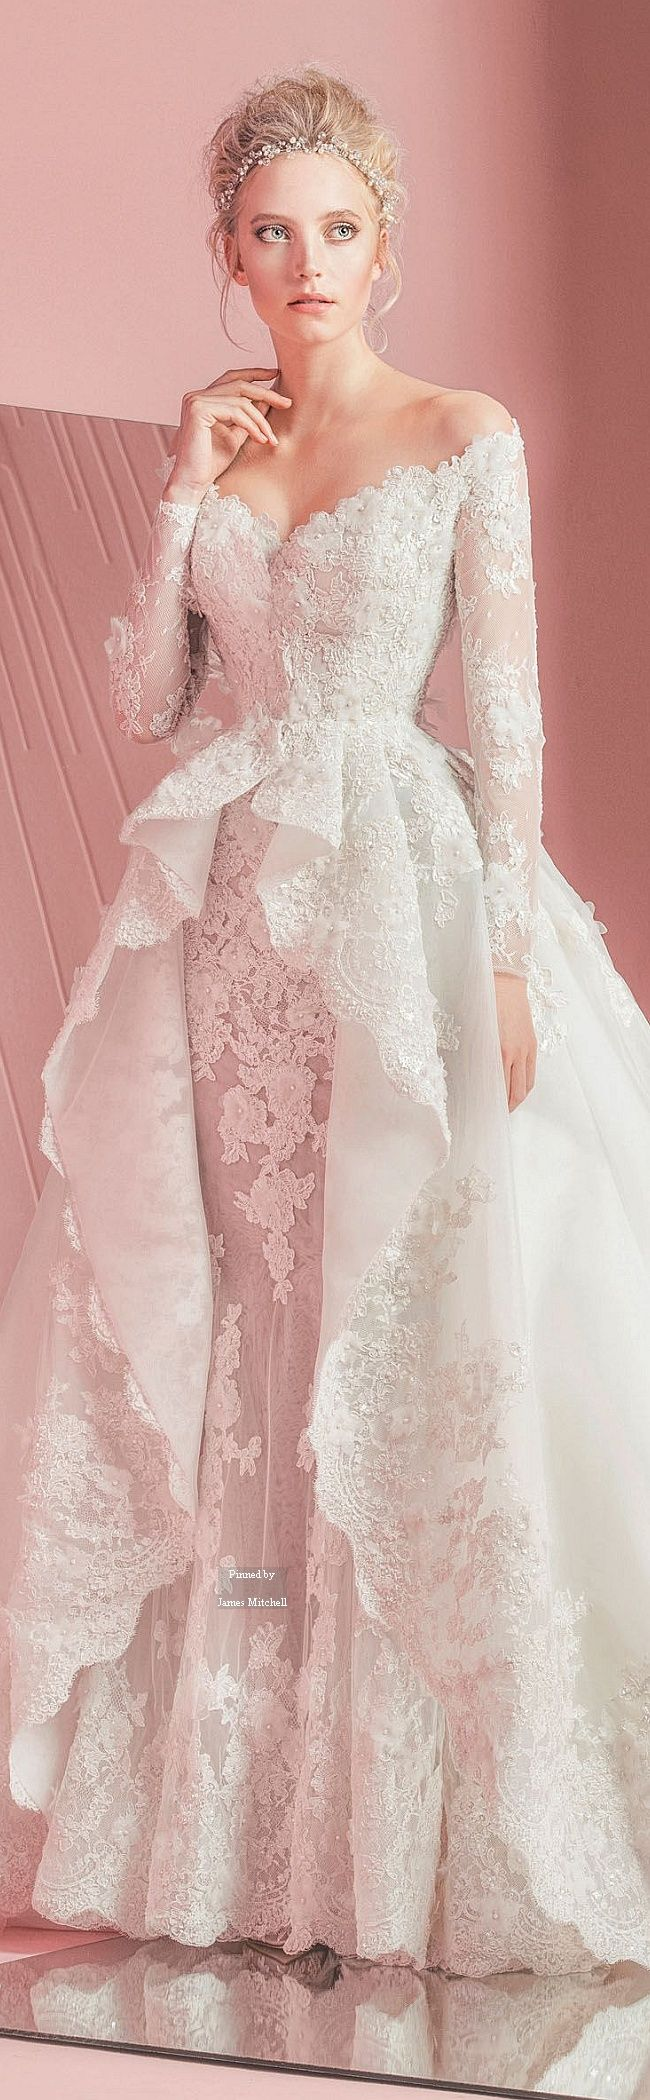 Zuhair Murad Bridal Spring-summer 2016 - Bit too fussy with all of the lace would have less lace and more duchess satin maybe and probably just have off shoulder straps not full lace sleeves but this is very pretty.